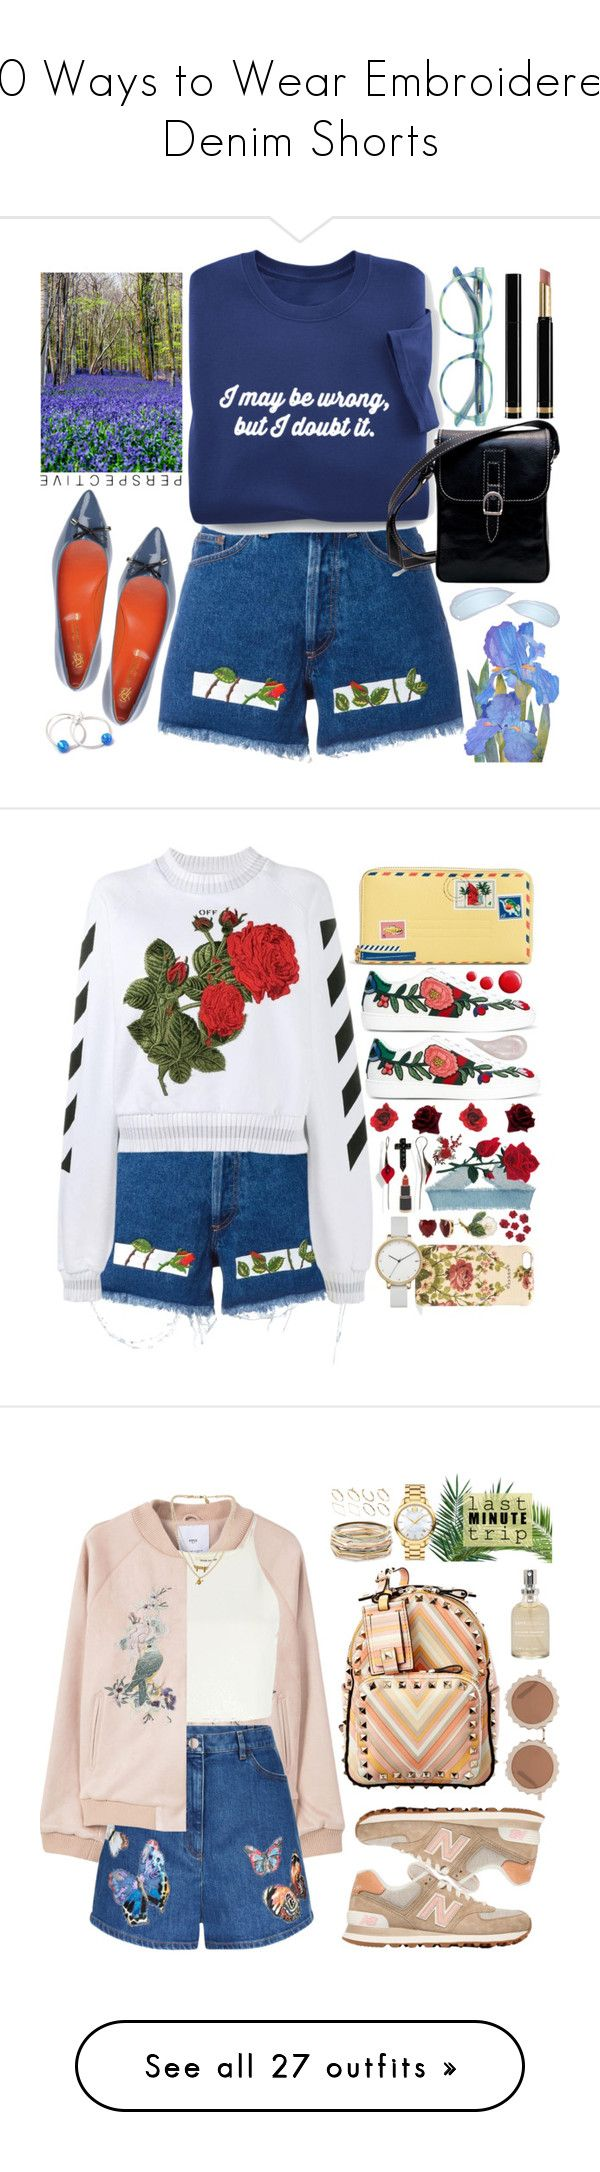 """""""20 Ways to Wear Embroidered Denim Shorts"""" by polyvore-editorial ❤ liked on Polyvore featuring waystowear, Embroideredshorts, Off-White, R&M, Saint-Honoré Paris Souliers, Gucci, Vera Bradley, Skagen, Betsey Johnson and Georgia Perry"""